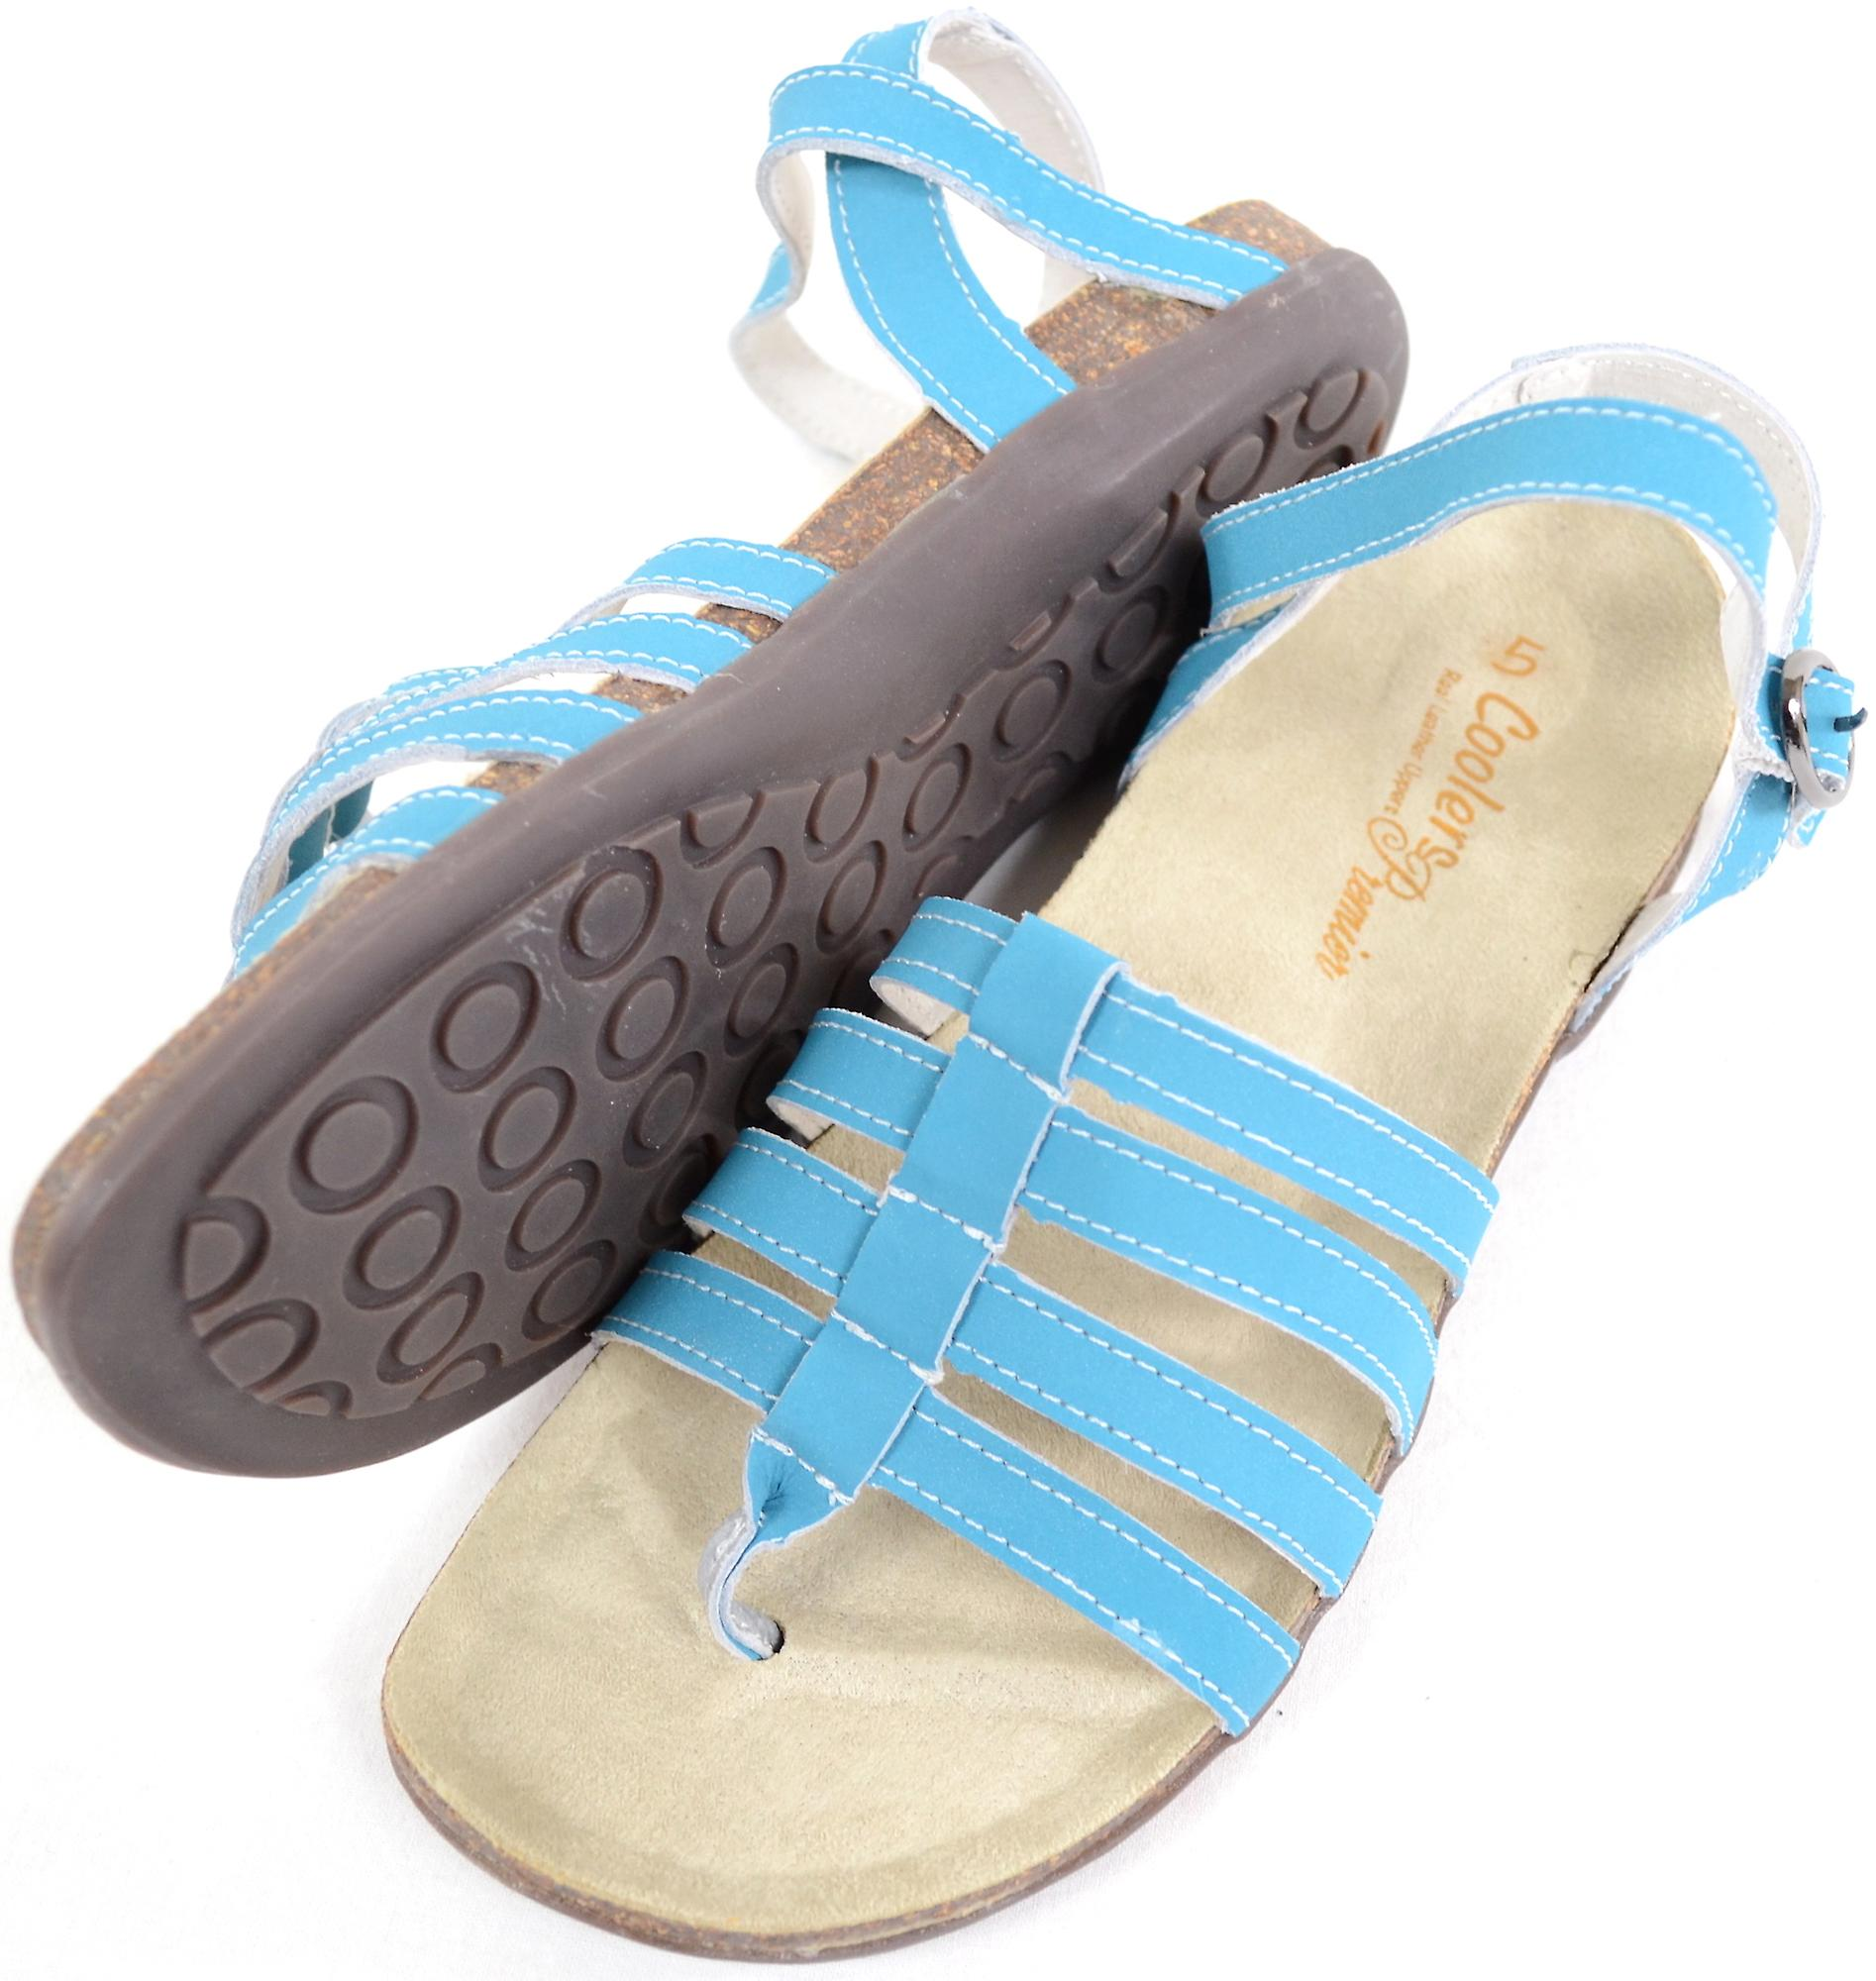 0b532c772 Ladies   Womens Leather Summer   Holiday   Beach Strapped Sandals   Shoe -  Turquoise -